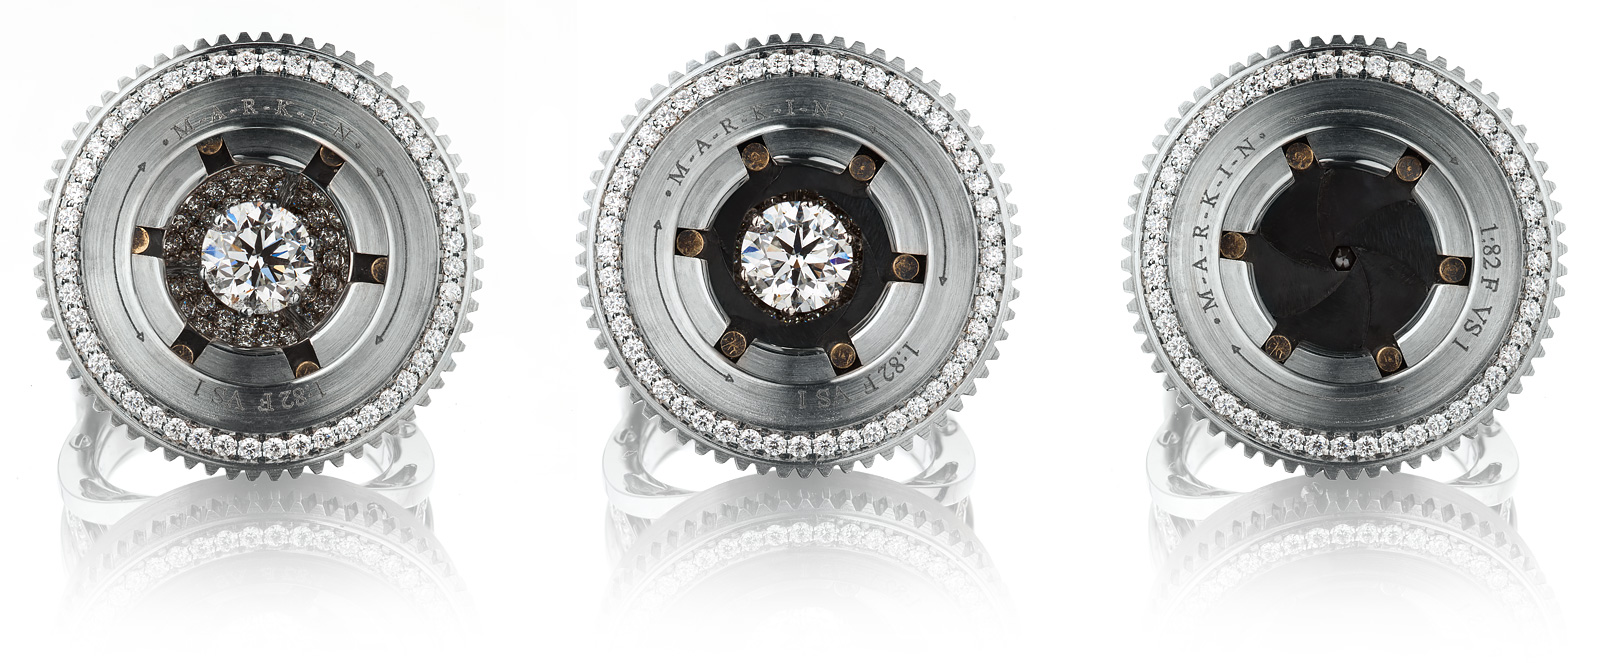 The Markin Aperture No. 2 Ring